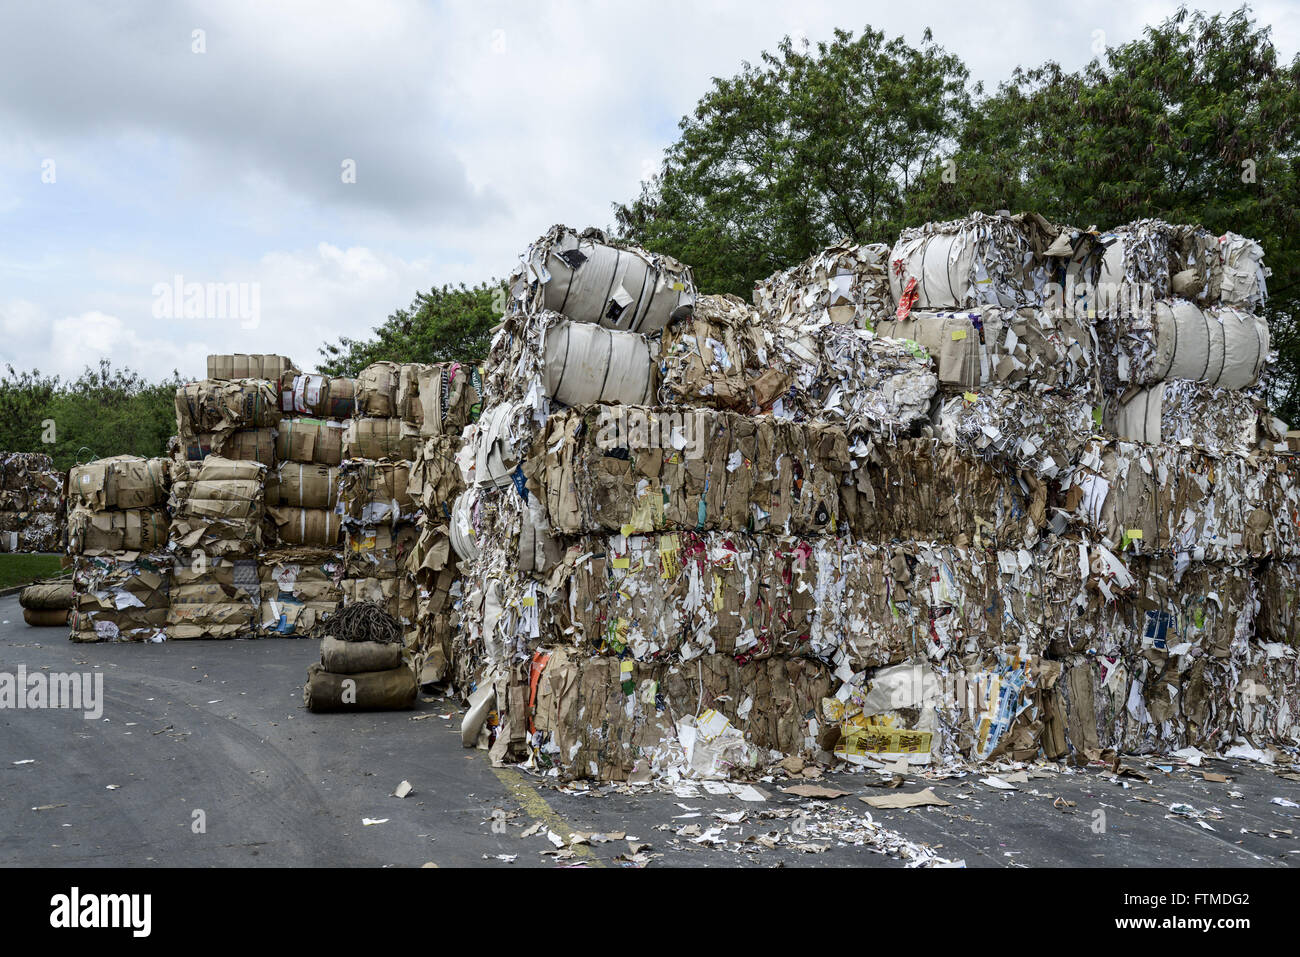 Bales of recyclable material that will be processed into packaging paper - Stock Image